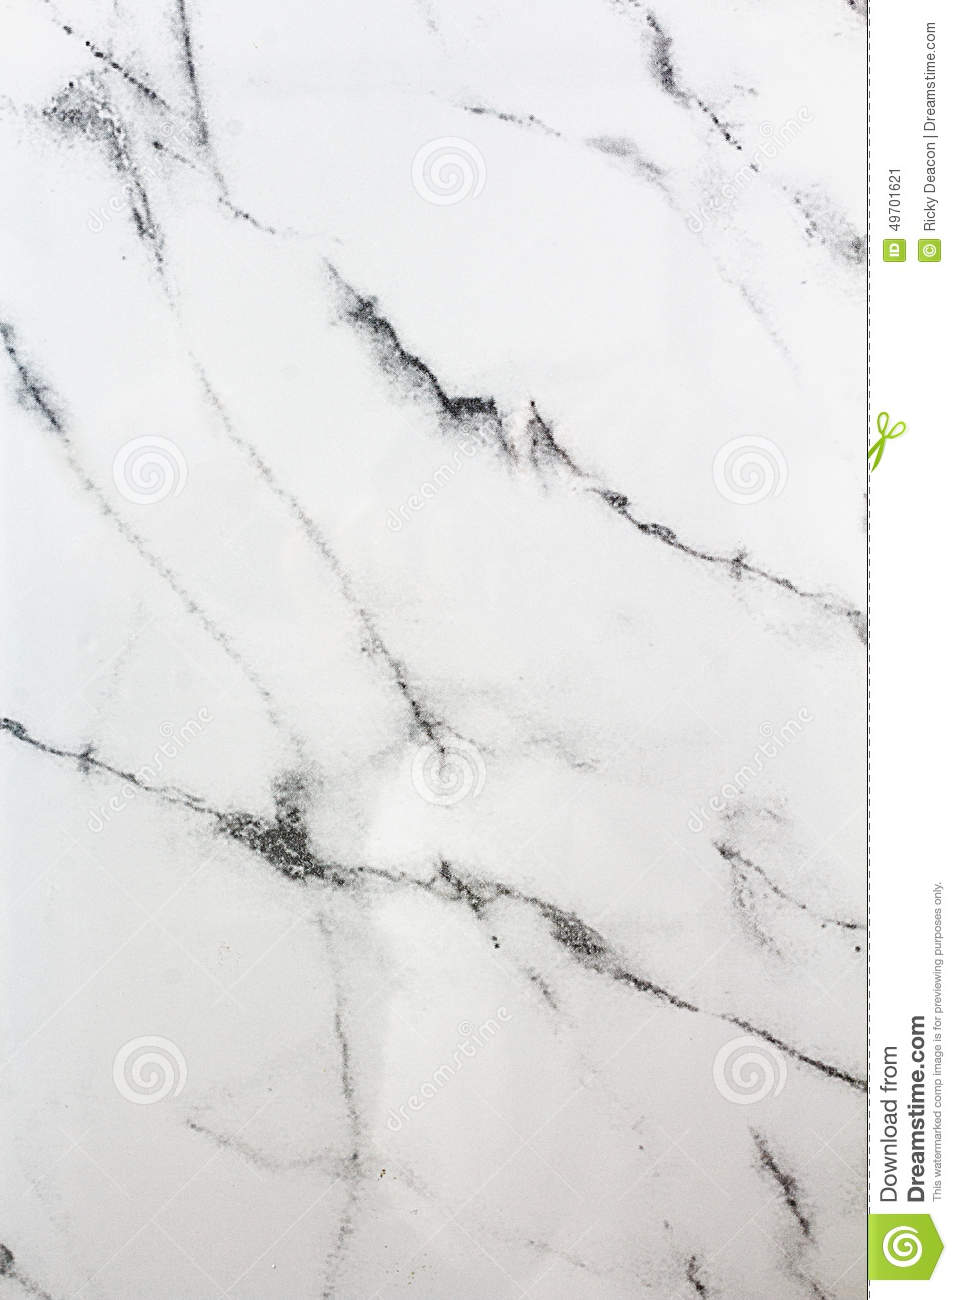 black and white tile kitchen curtain rods marble effect stock photo - image: 49701621